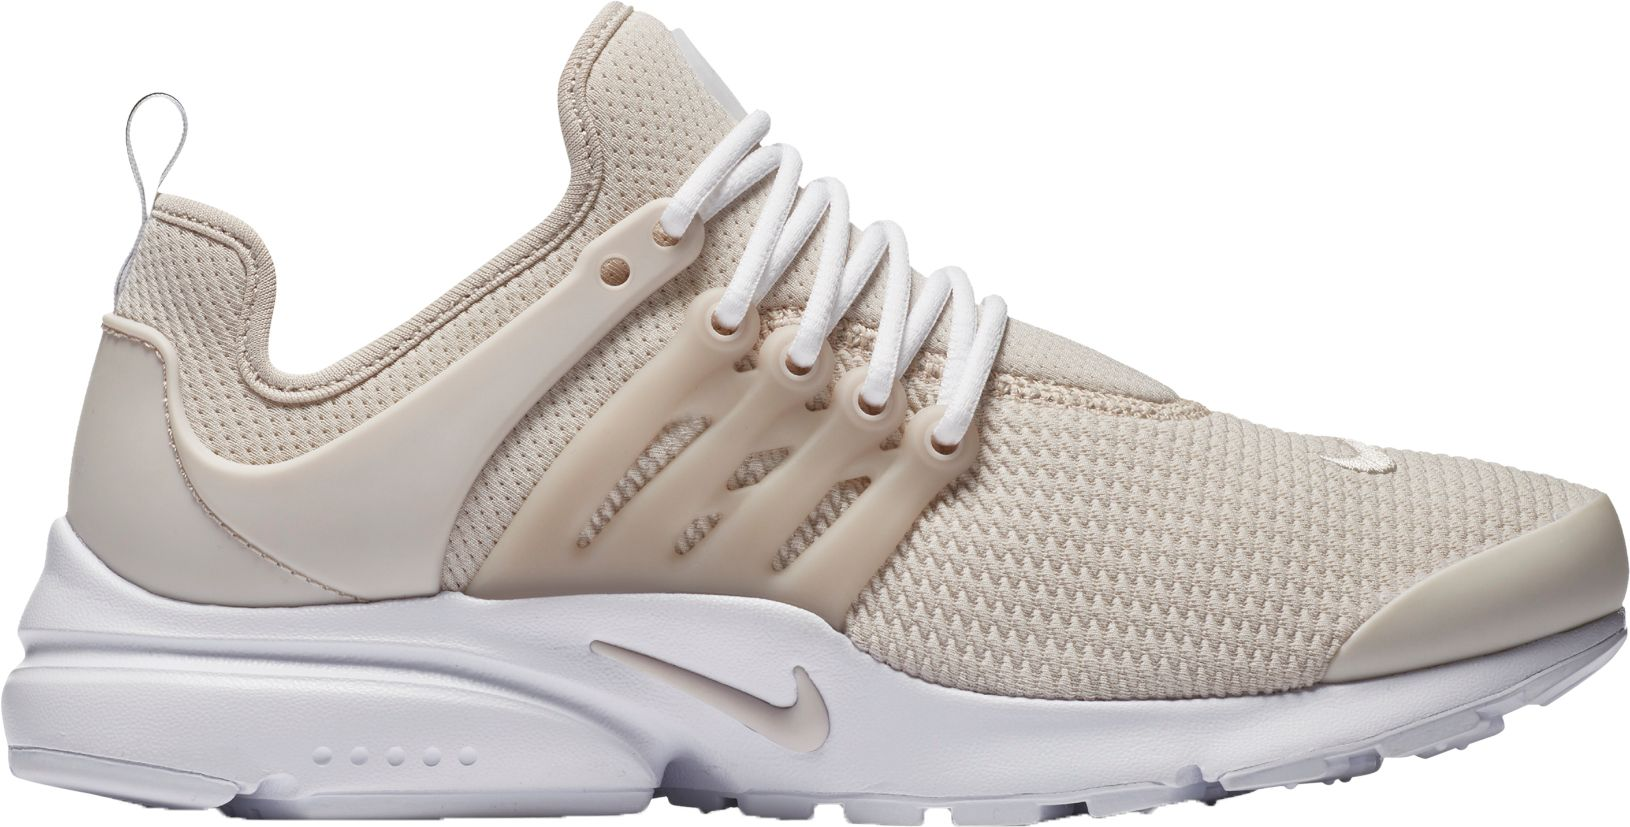 watch 04ce0 73298 Nike Women's Air Presto Shoes in 2019 | Products | Shoes ...